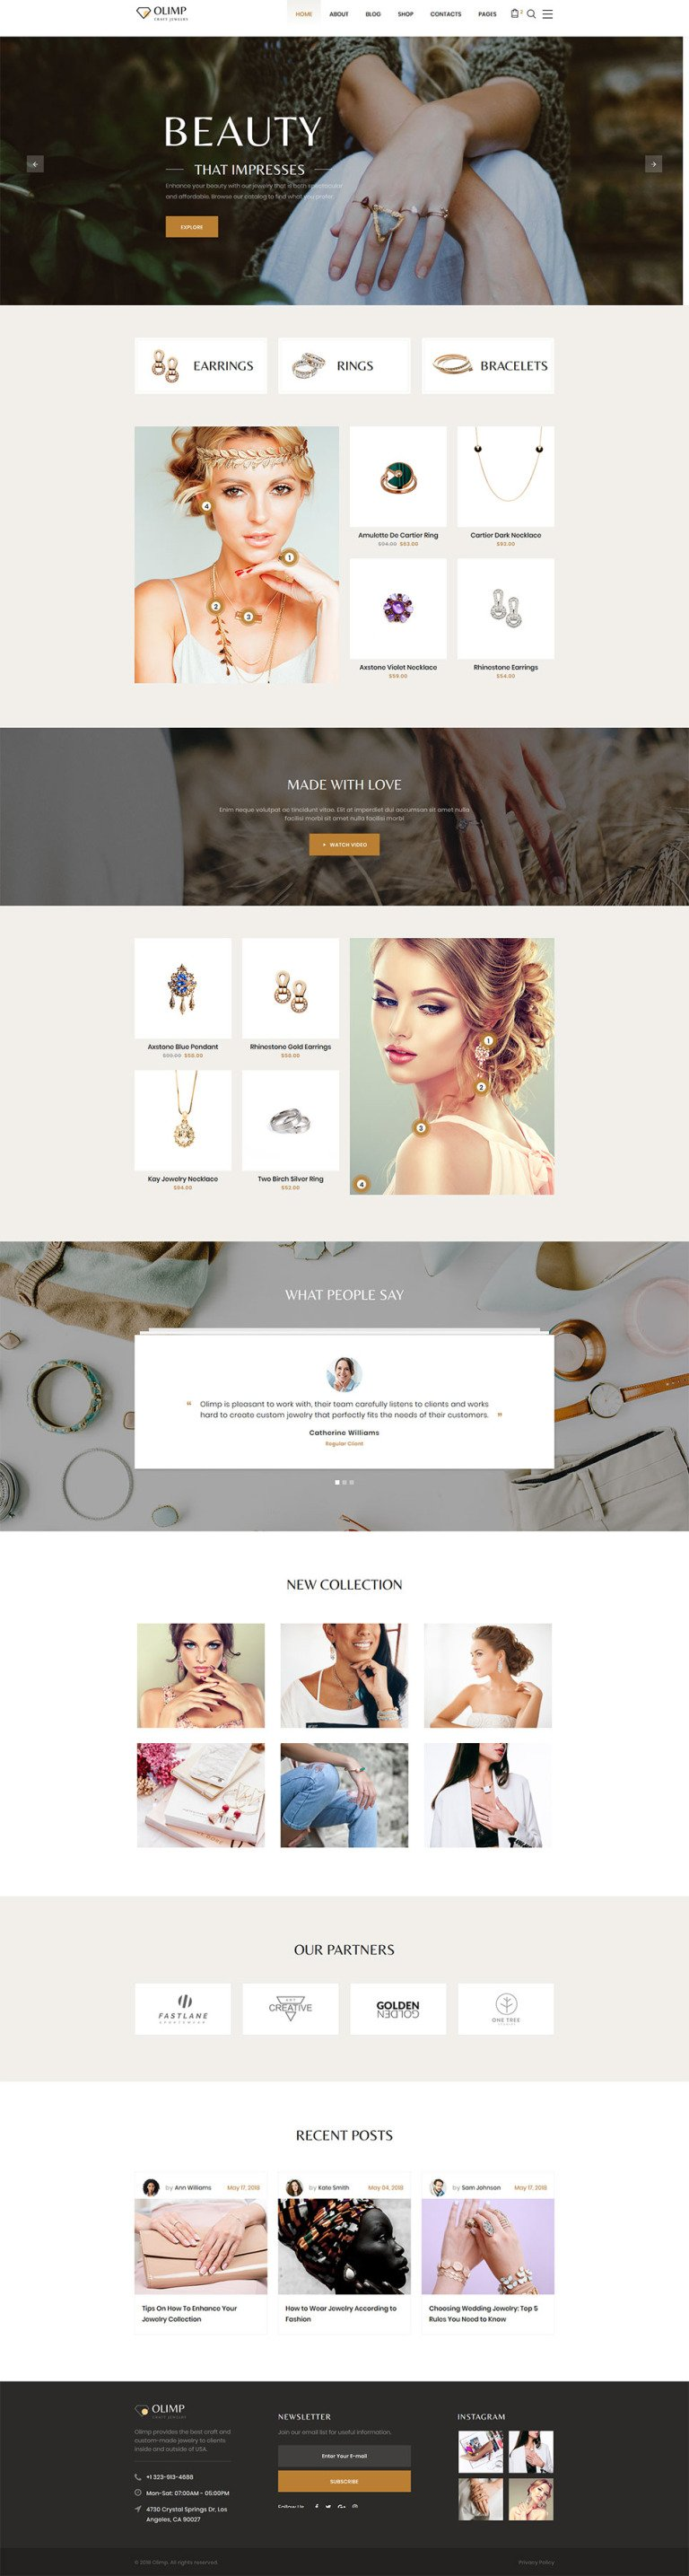 DiamondShop - Beautiful Jewelry Responsive Website Template New Screenshots BIG